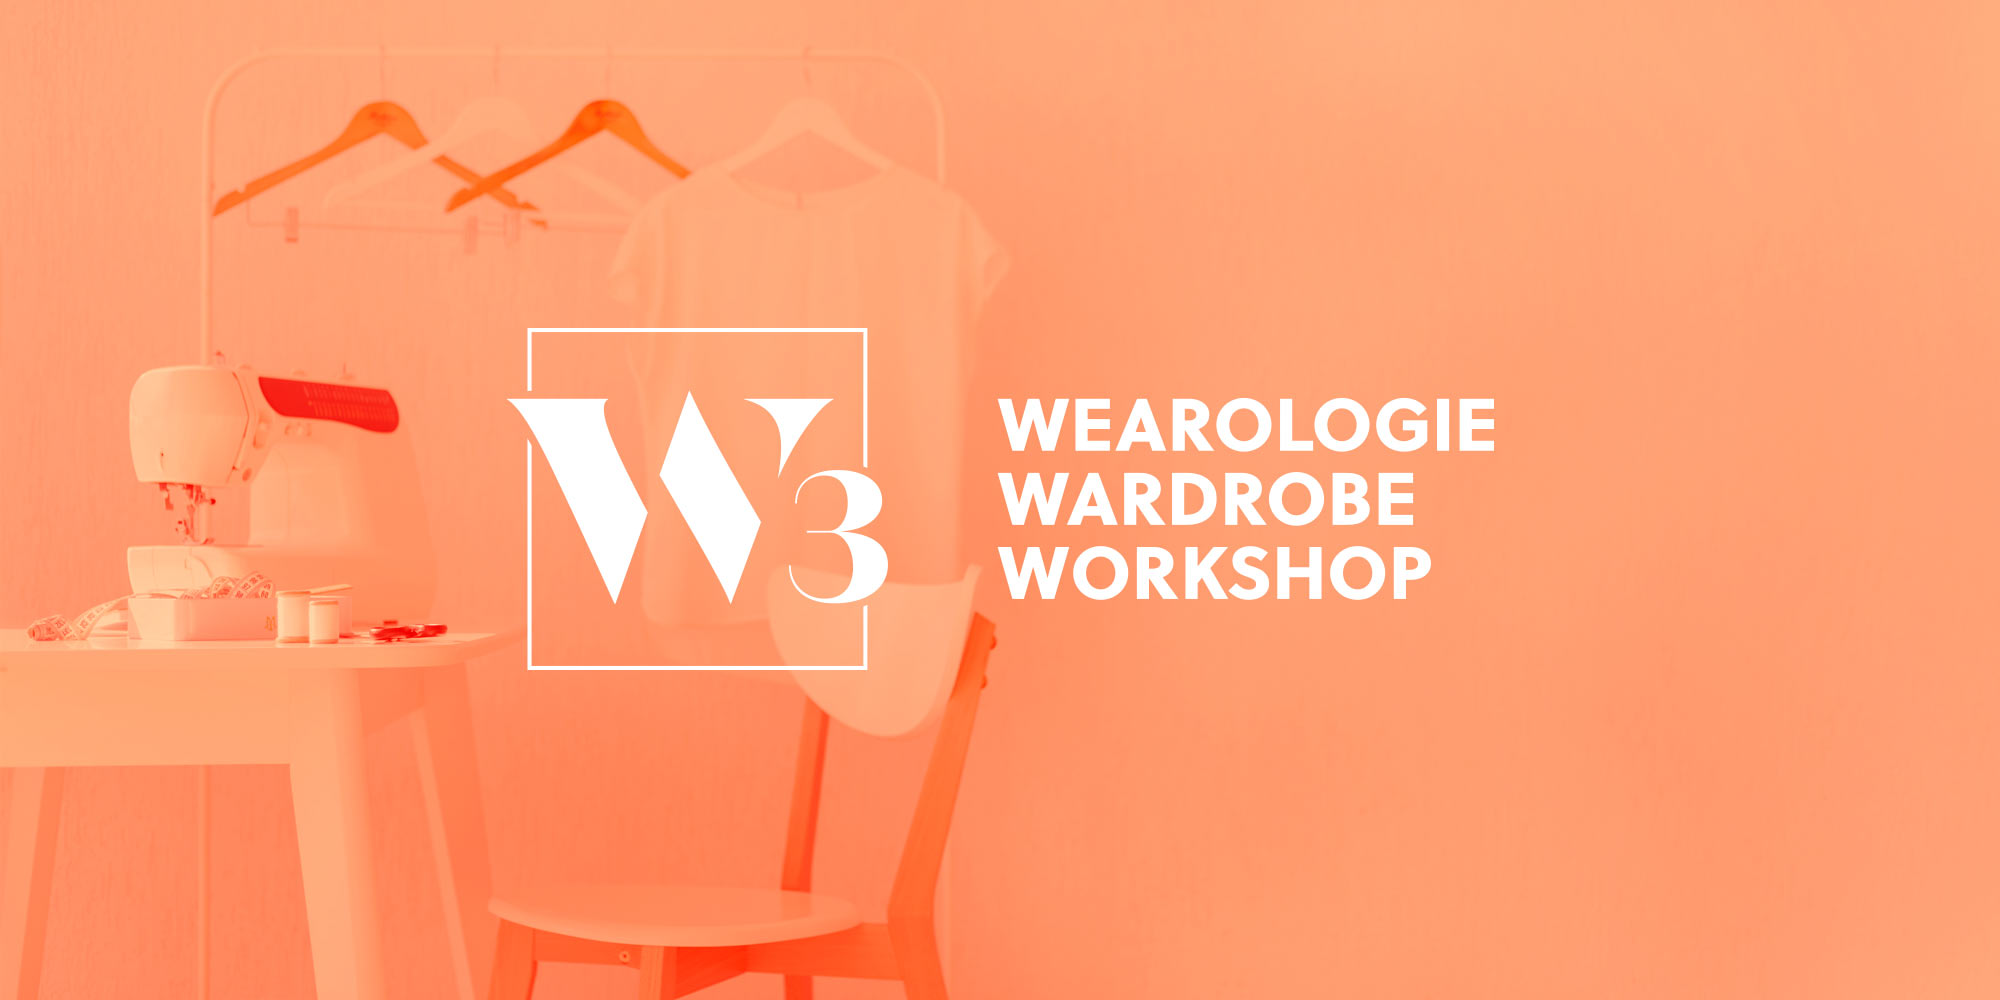 Wearologie Wardrobe Workshop.